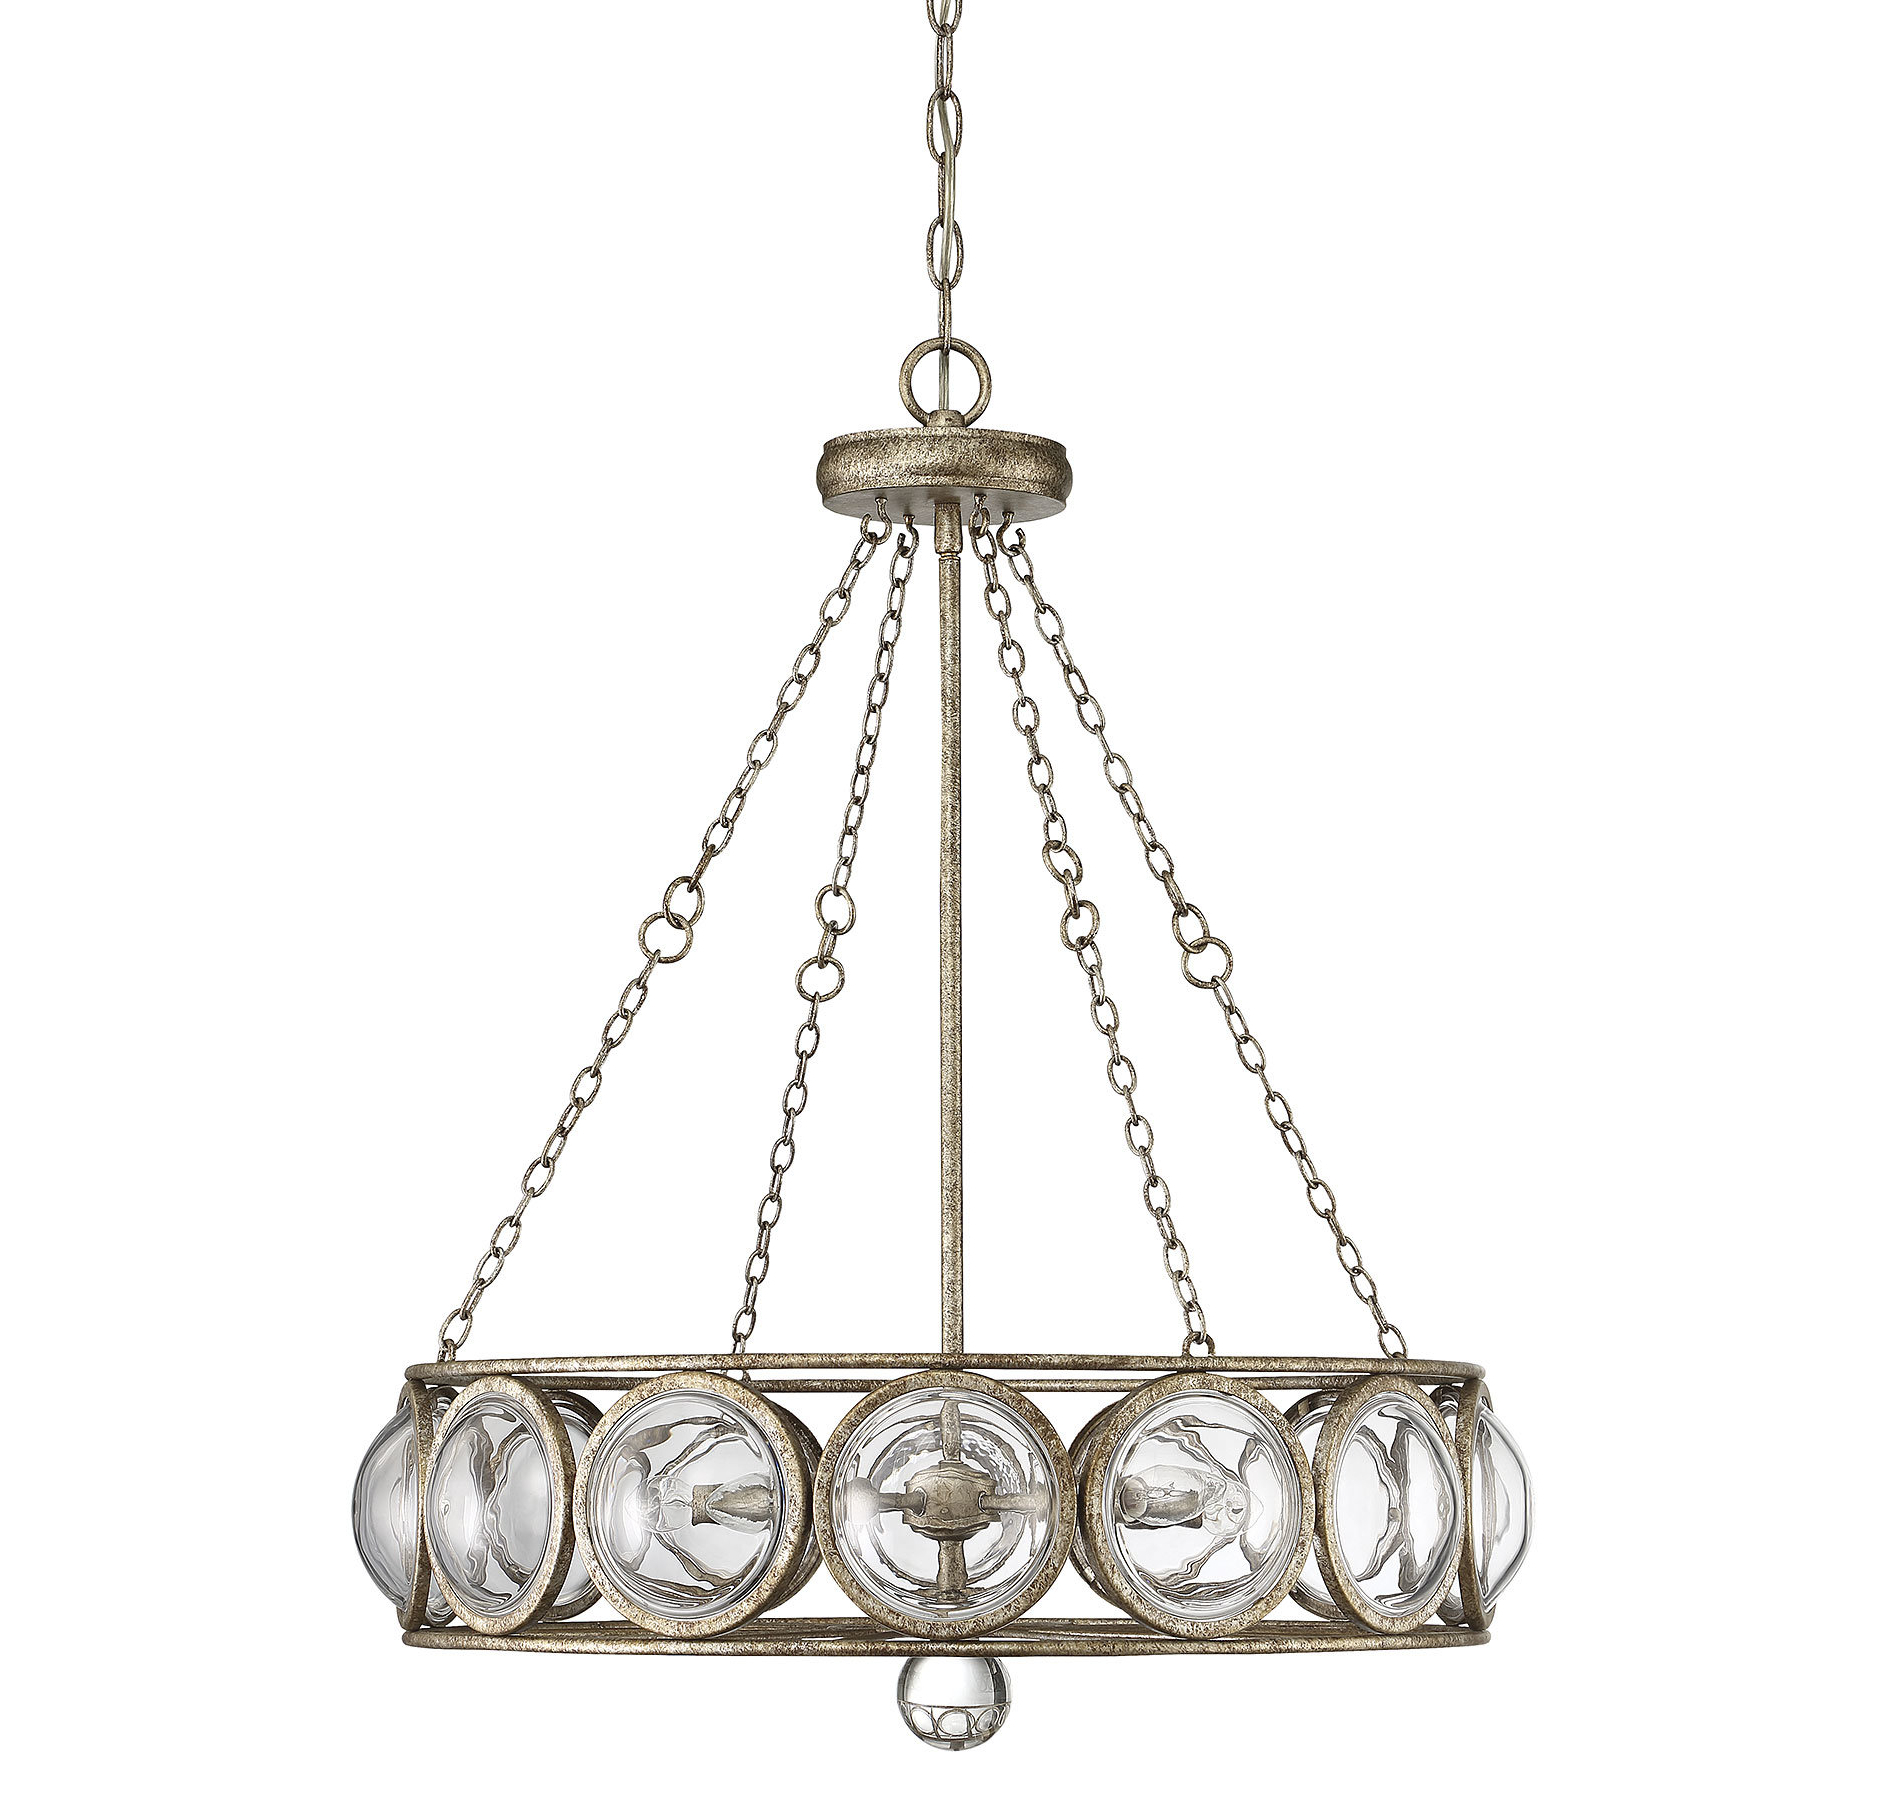 Hermione 5 Light Drum Chandeliers Within Latest Nellie 5 Light Drum Chandelier (Gallery 7 of 20)